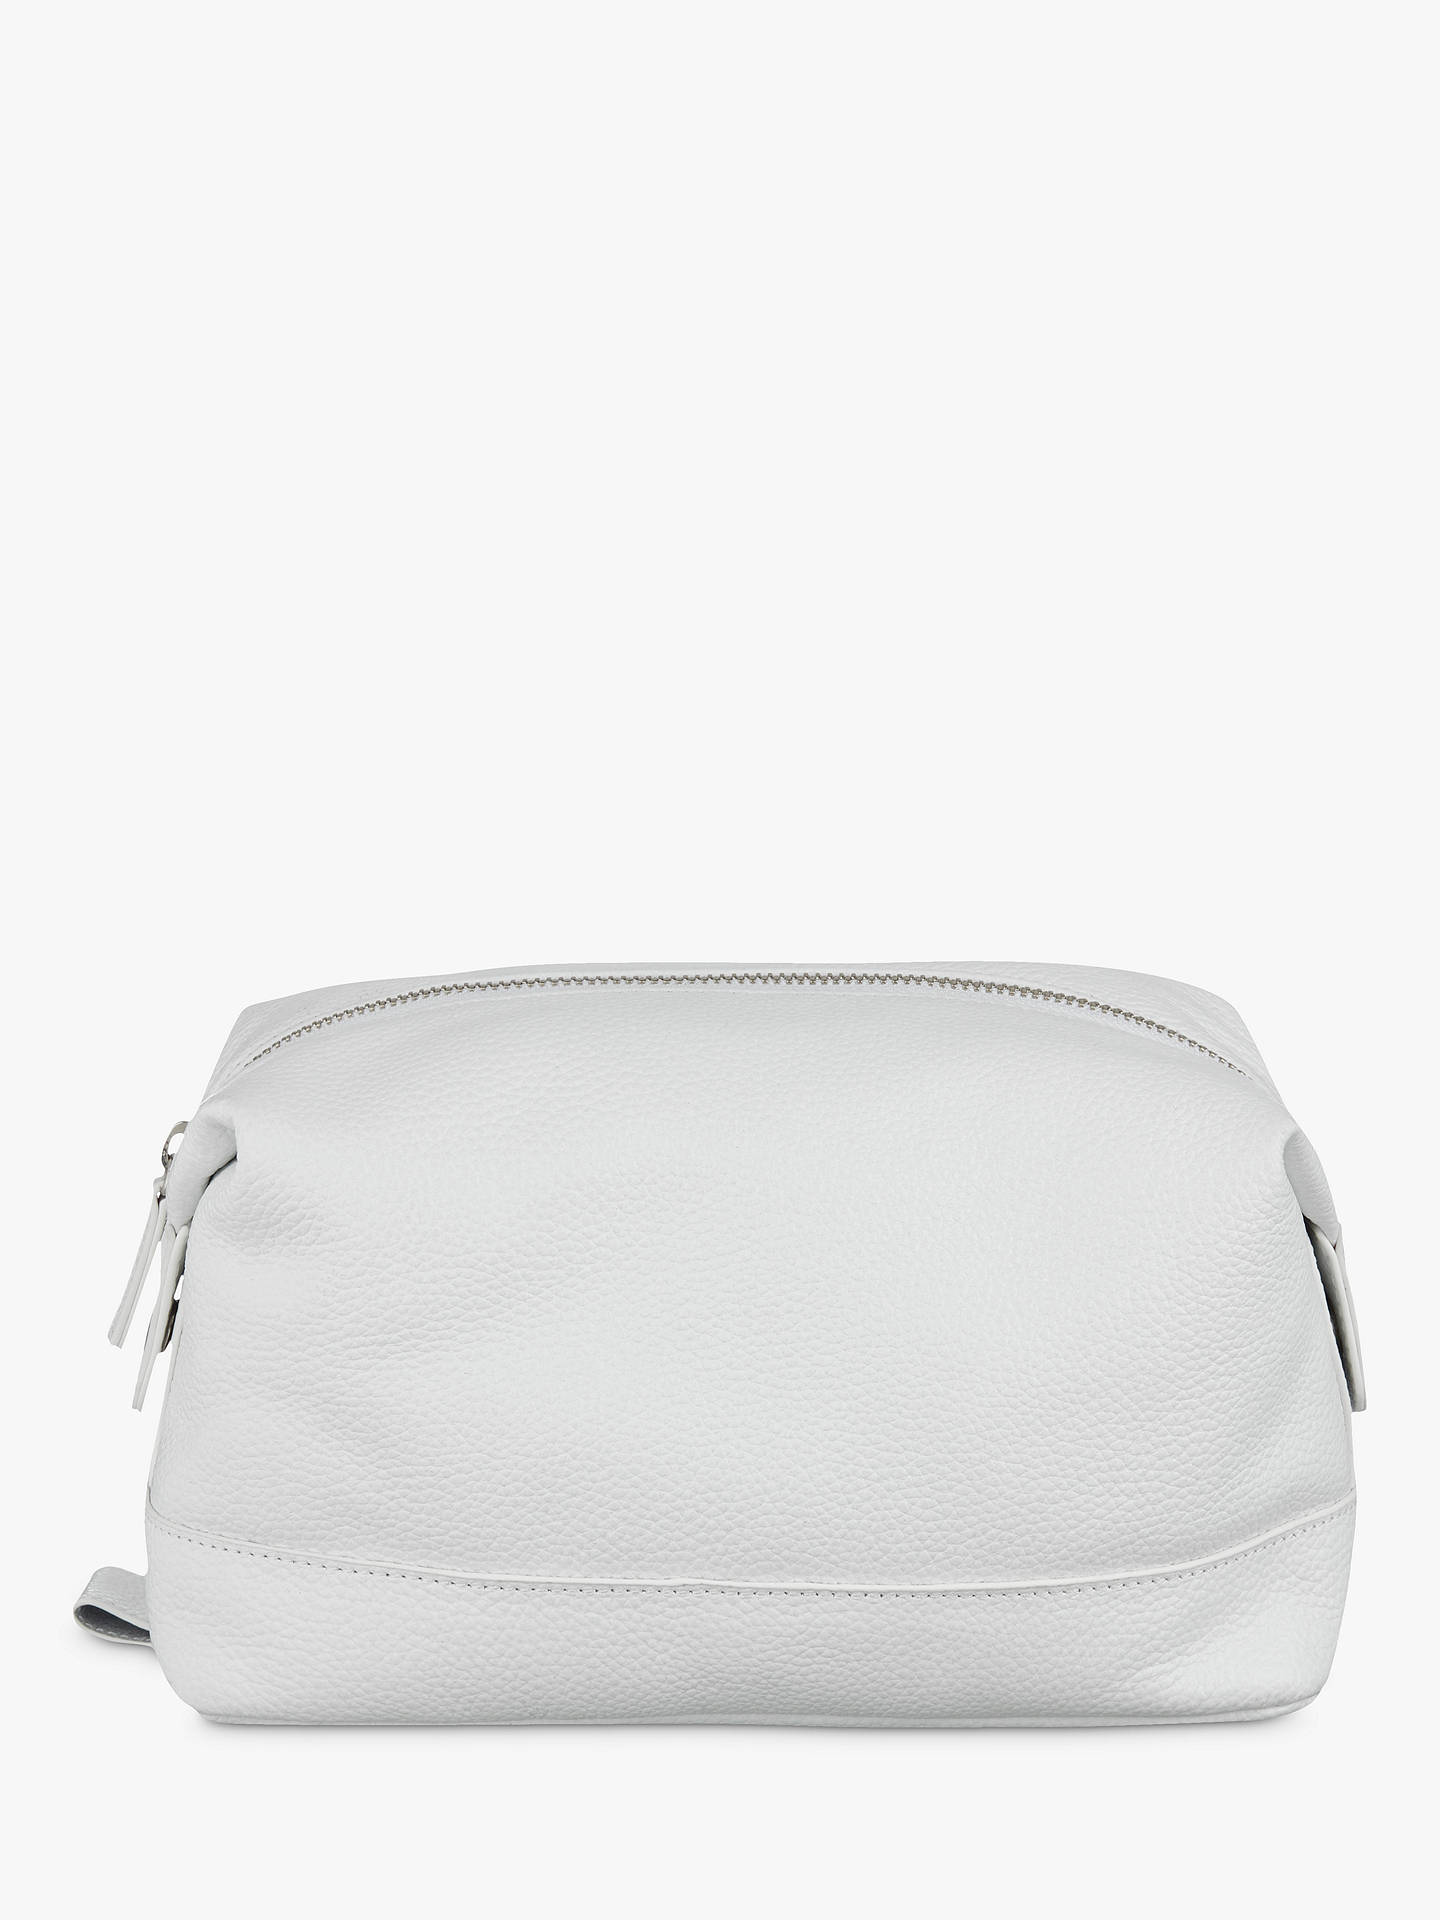 df0a86315543 Buy Croft Collection Leather Wash Bag, White Online at johnlewis.com ...